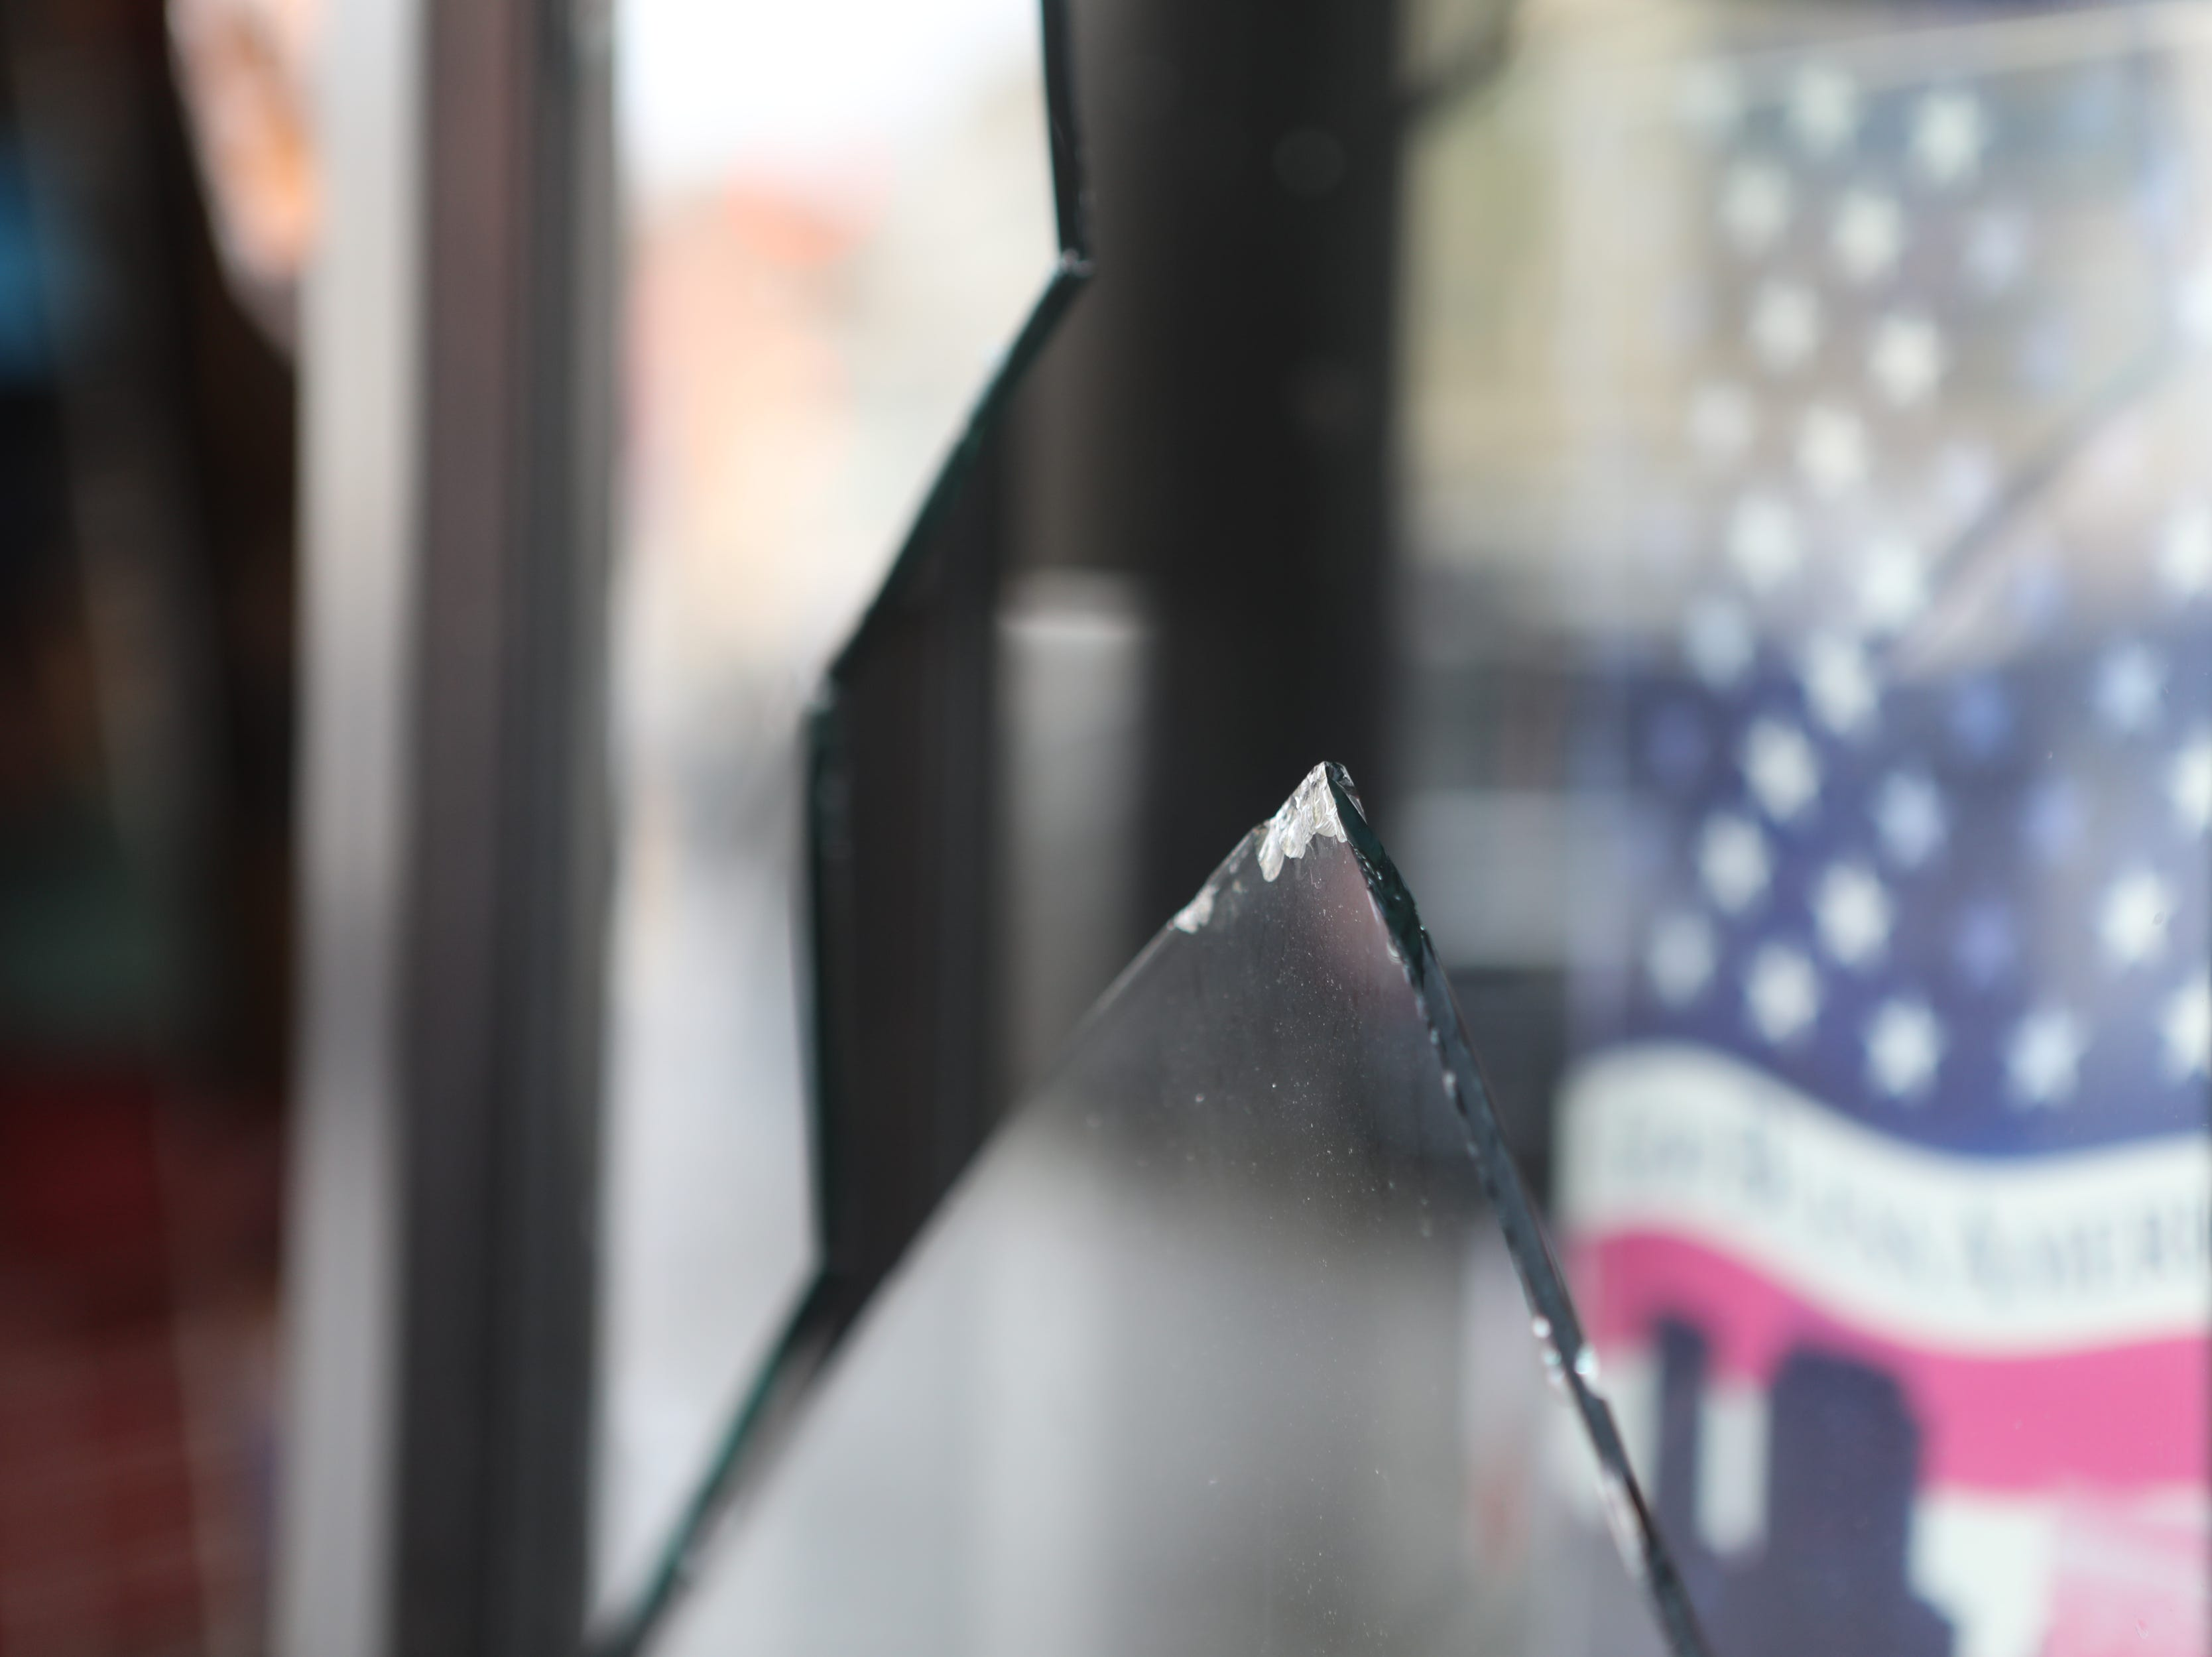 A glass door broke at City Fashion, in Paterson, after the power of the wind blew it open. Monday, April, 15, 2019